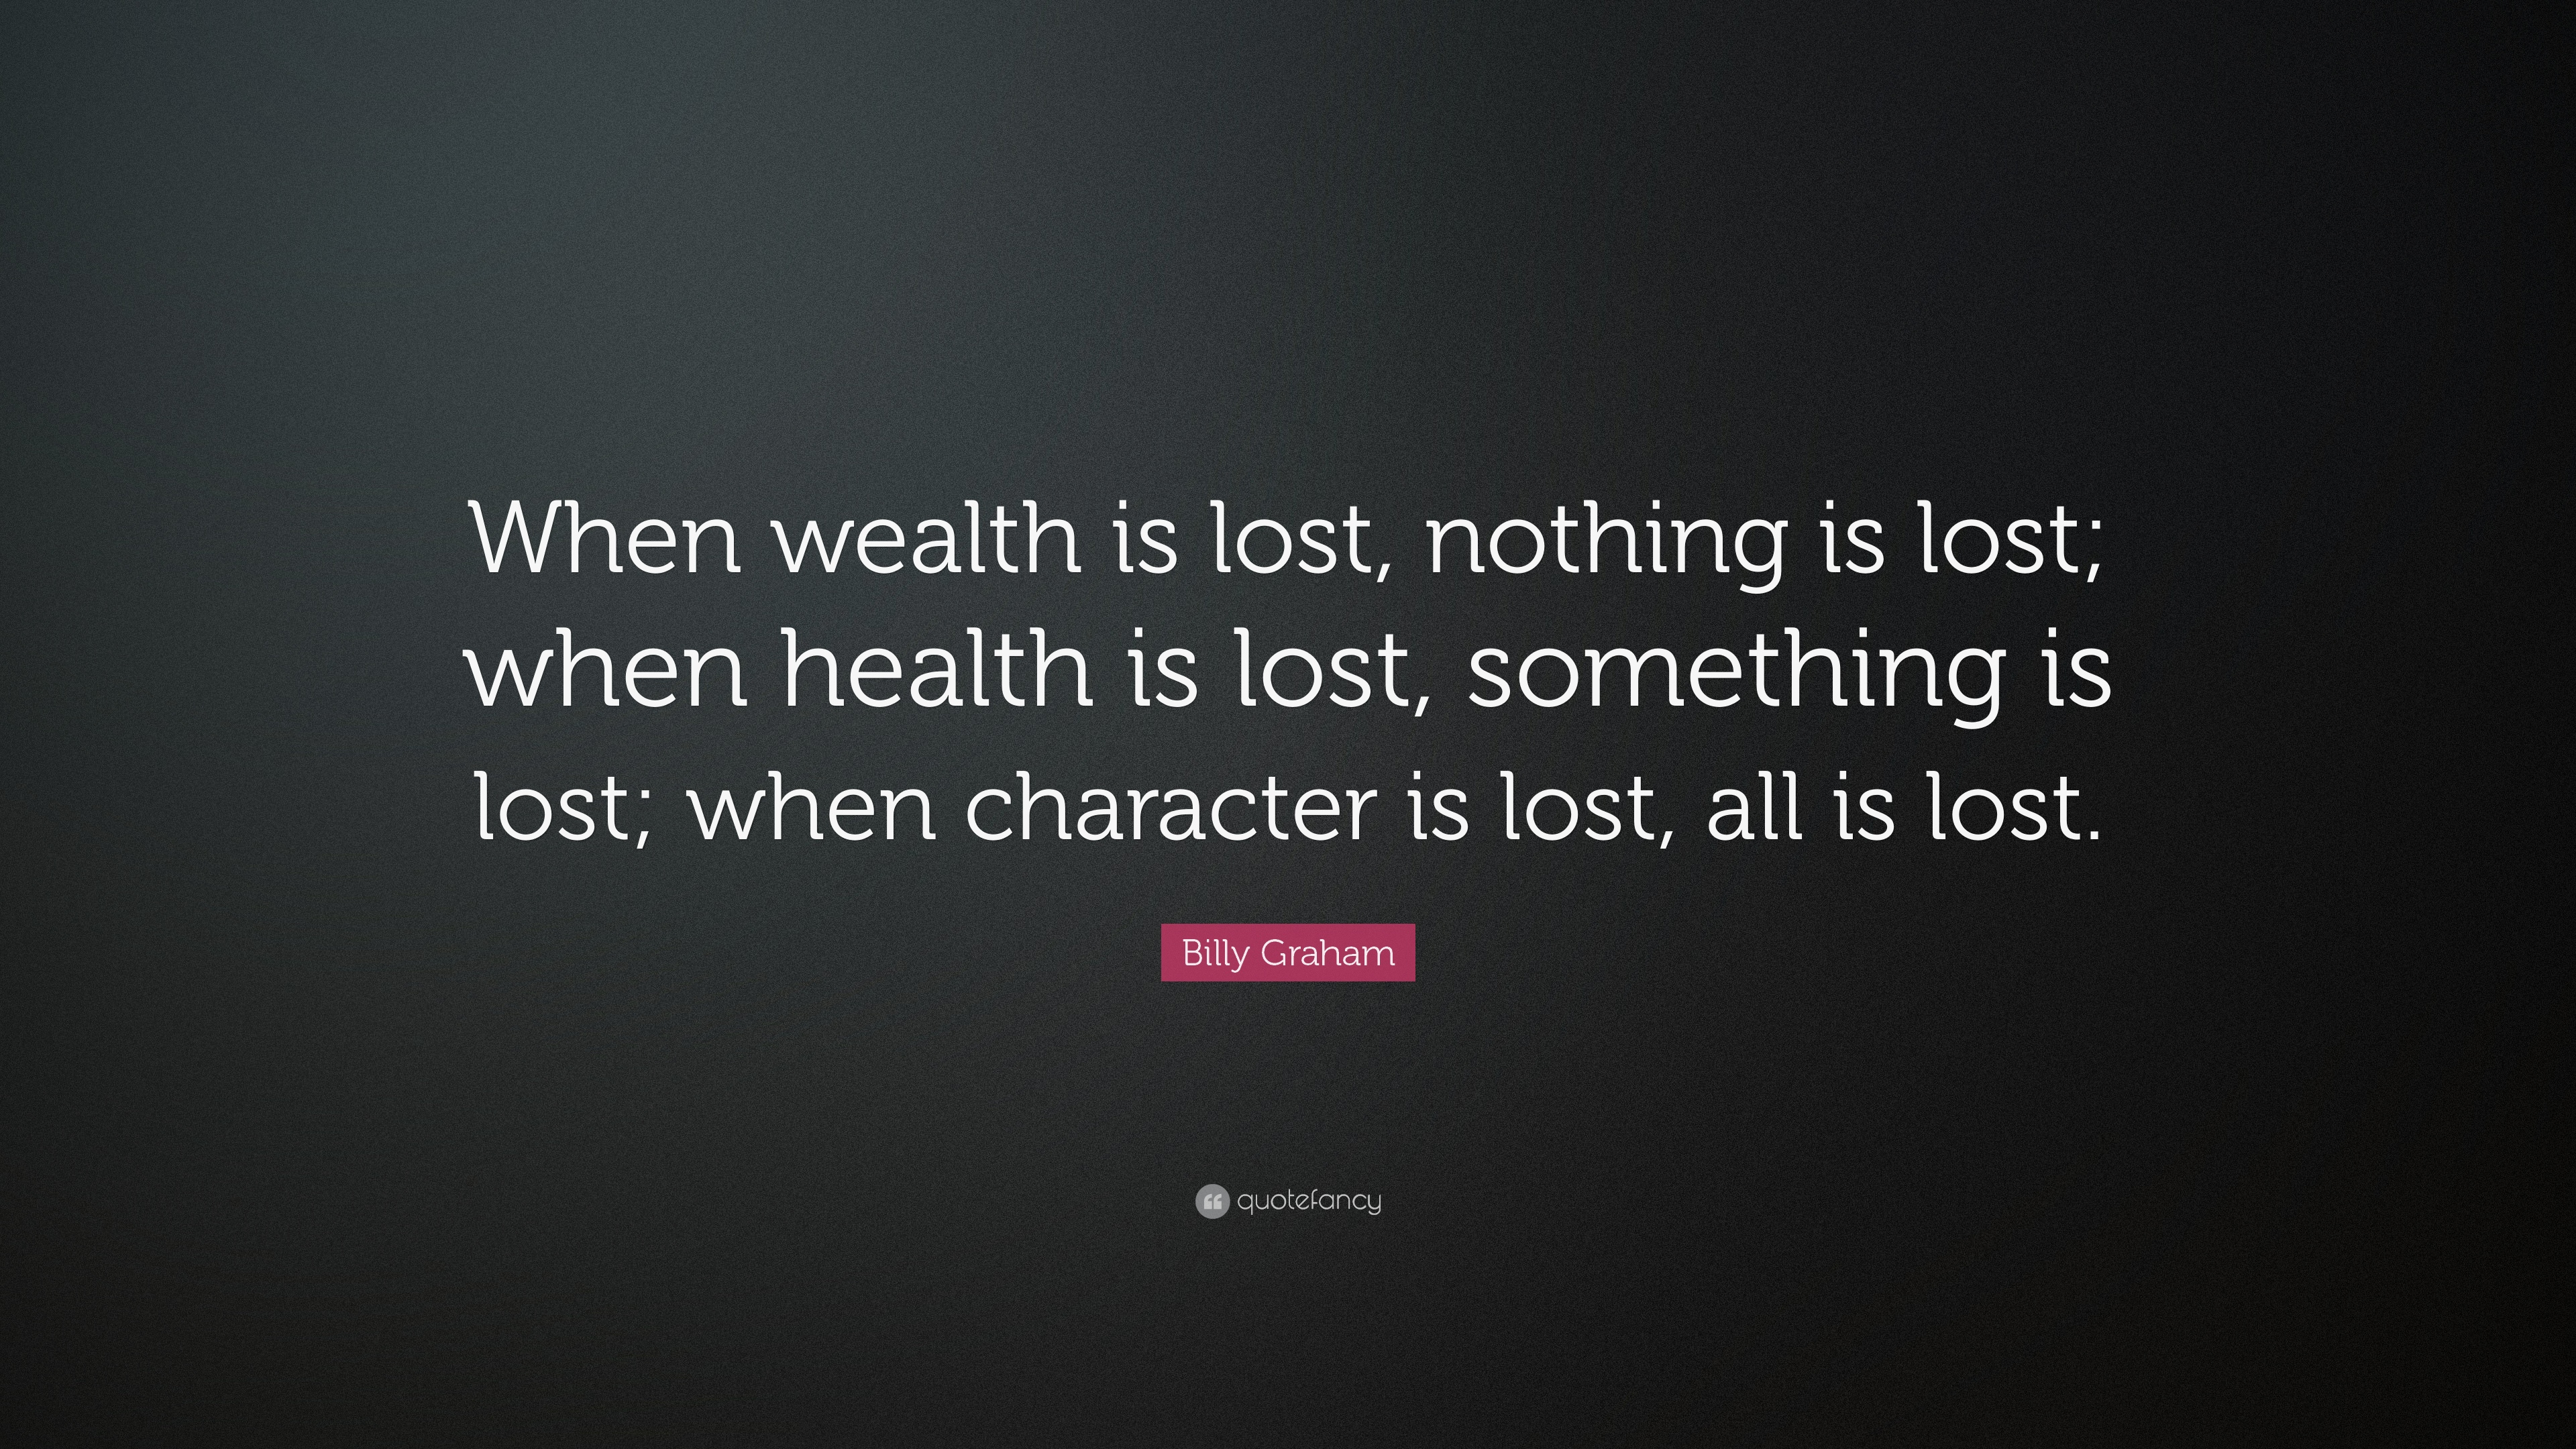 character is lost everything is lost Everything is lost when wealth is lost, something is lost when you bribe for nothing, nothing is lost when you lose character, because that is your investment, and our nethas have proved it windcatman joans 1 decade ago.